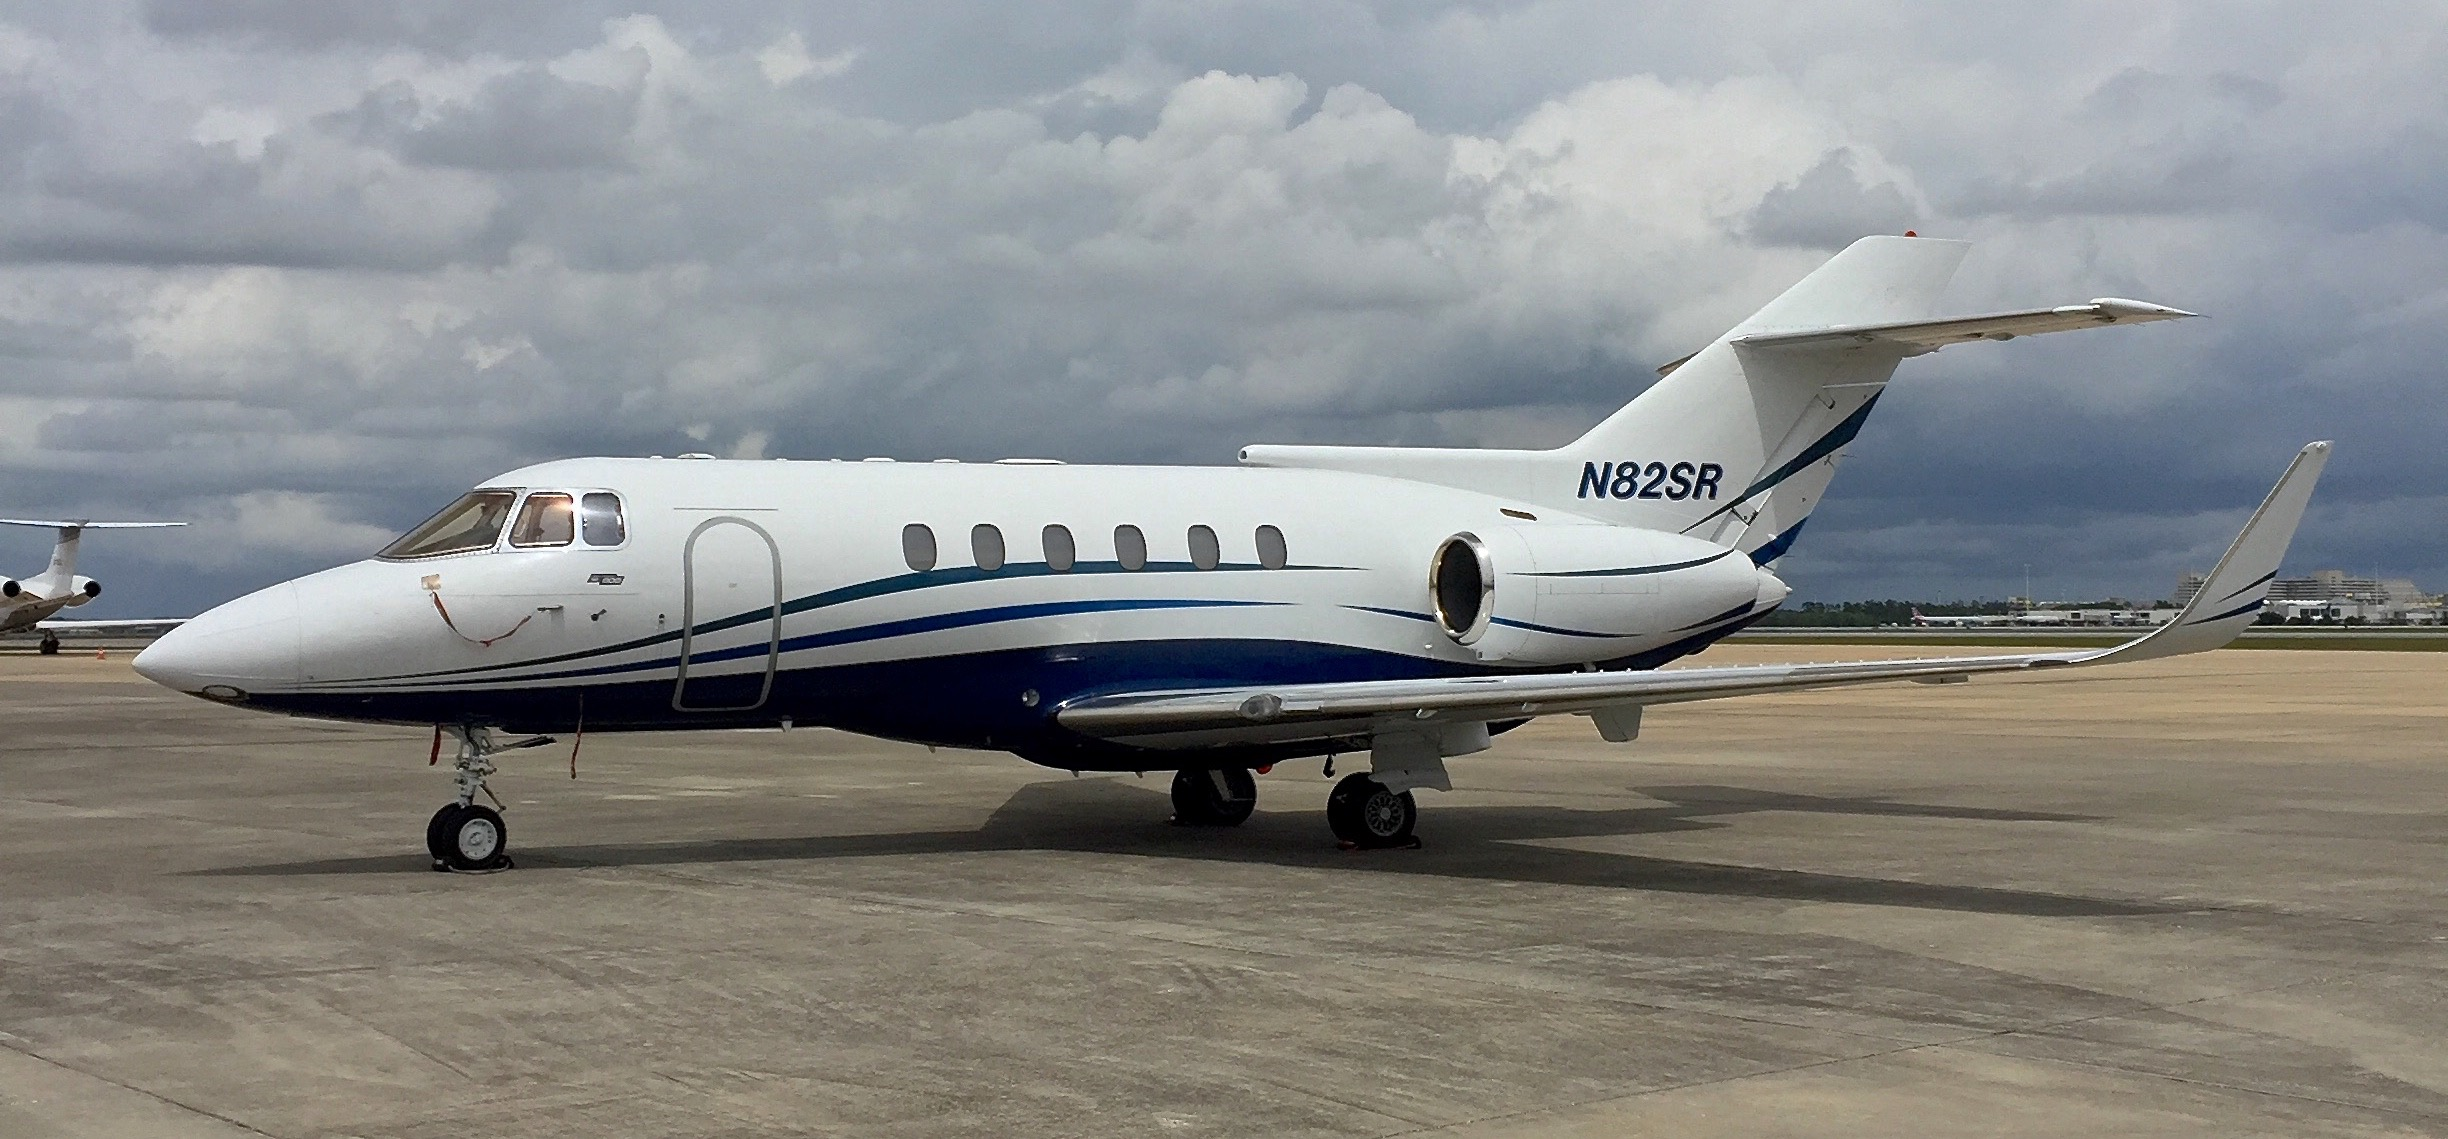 SOLD 1985 Hawker 800A sn 258026